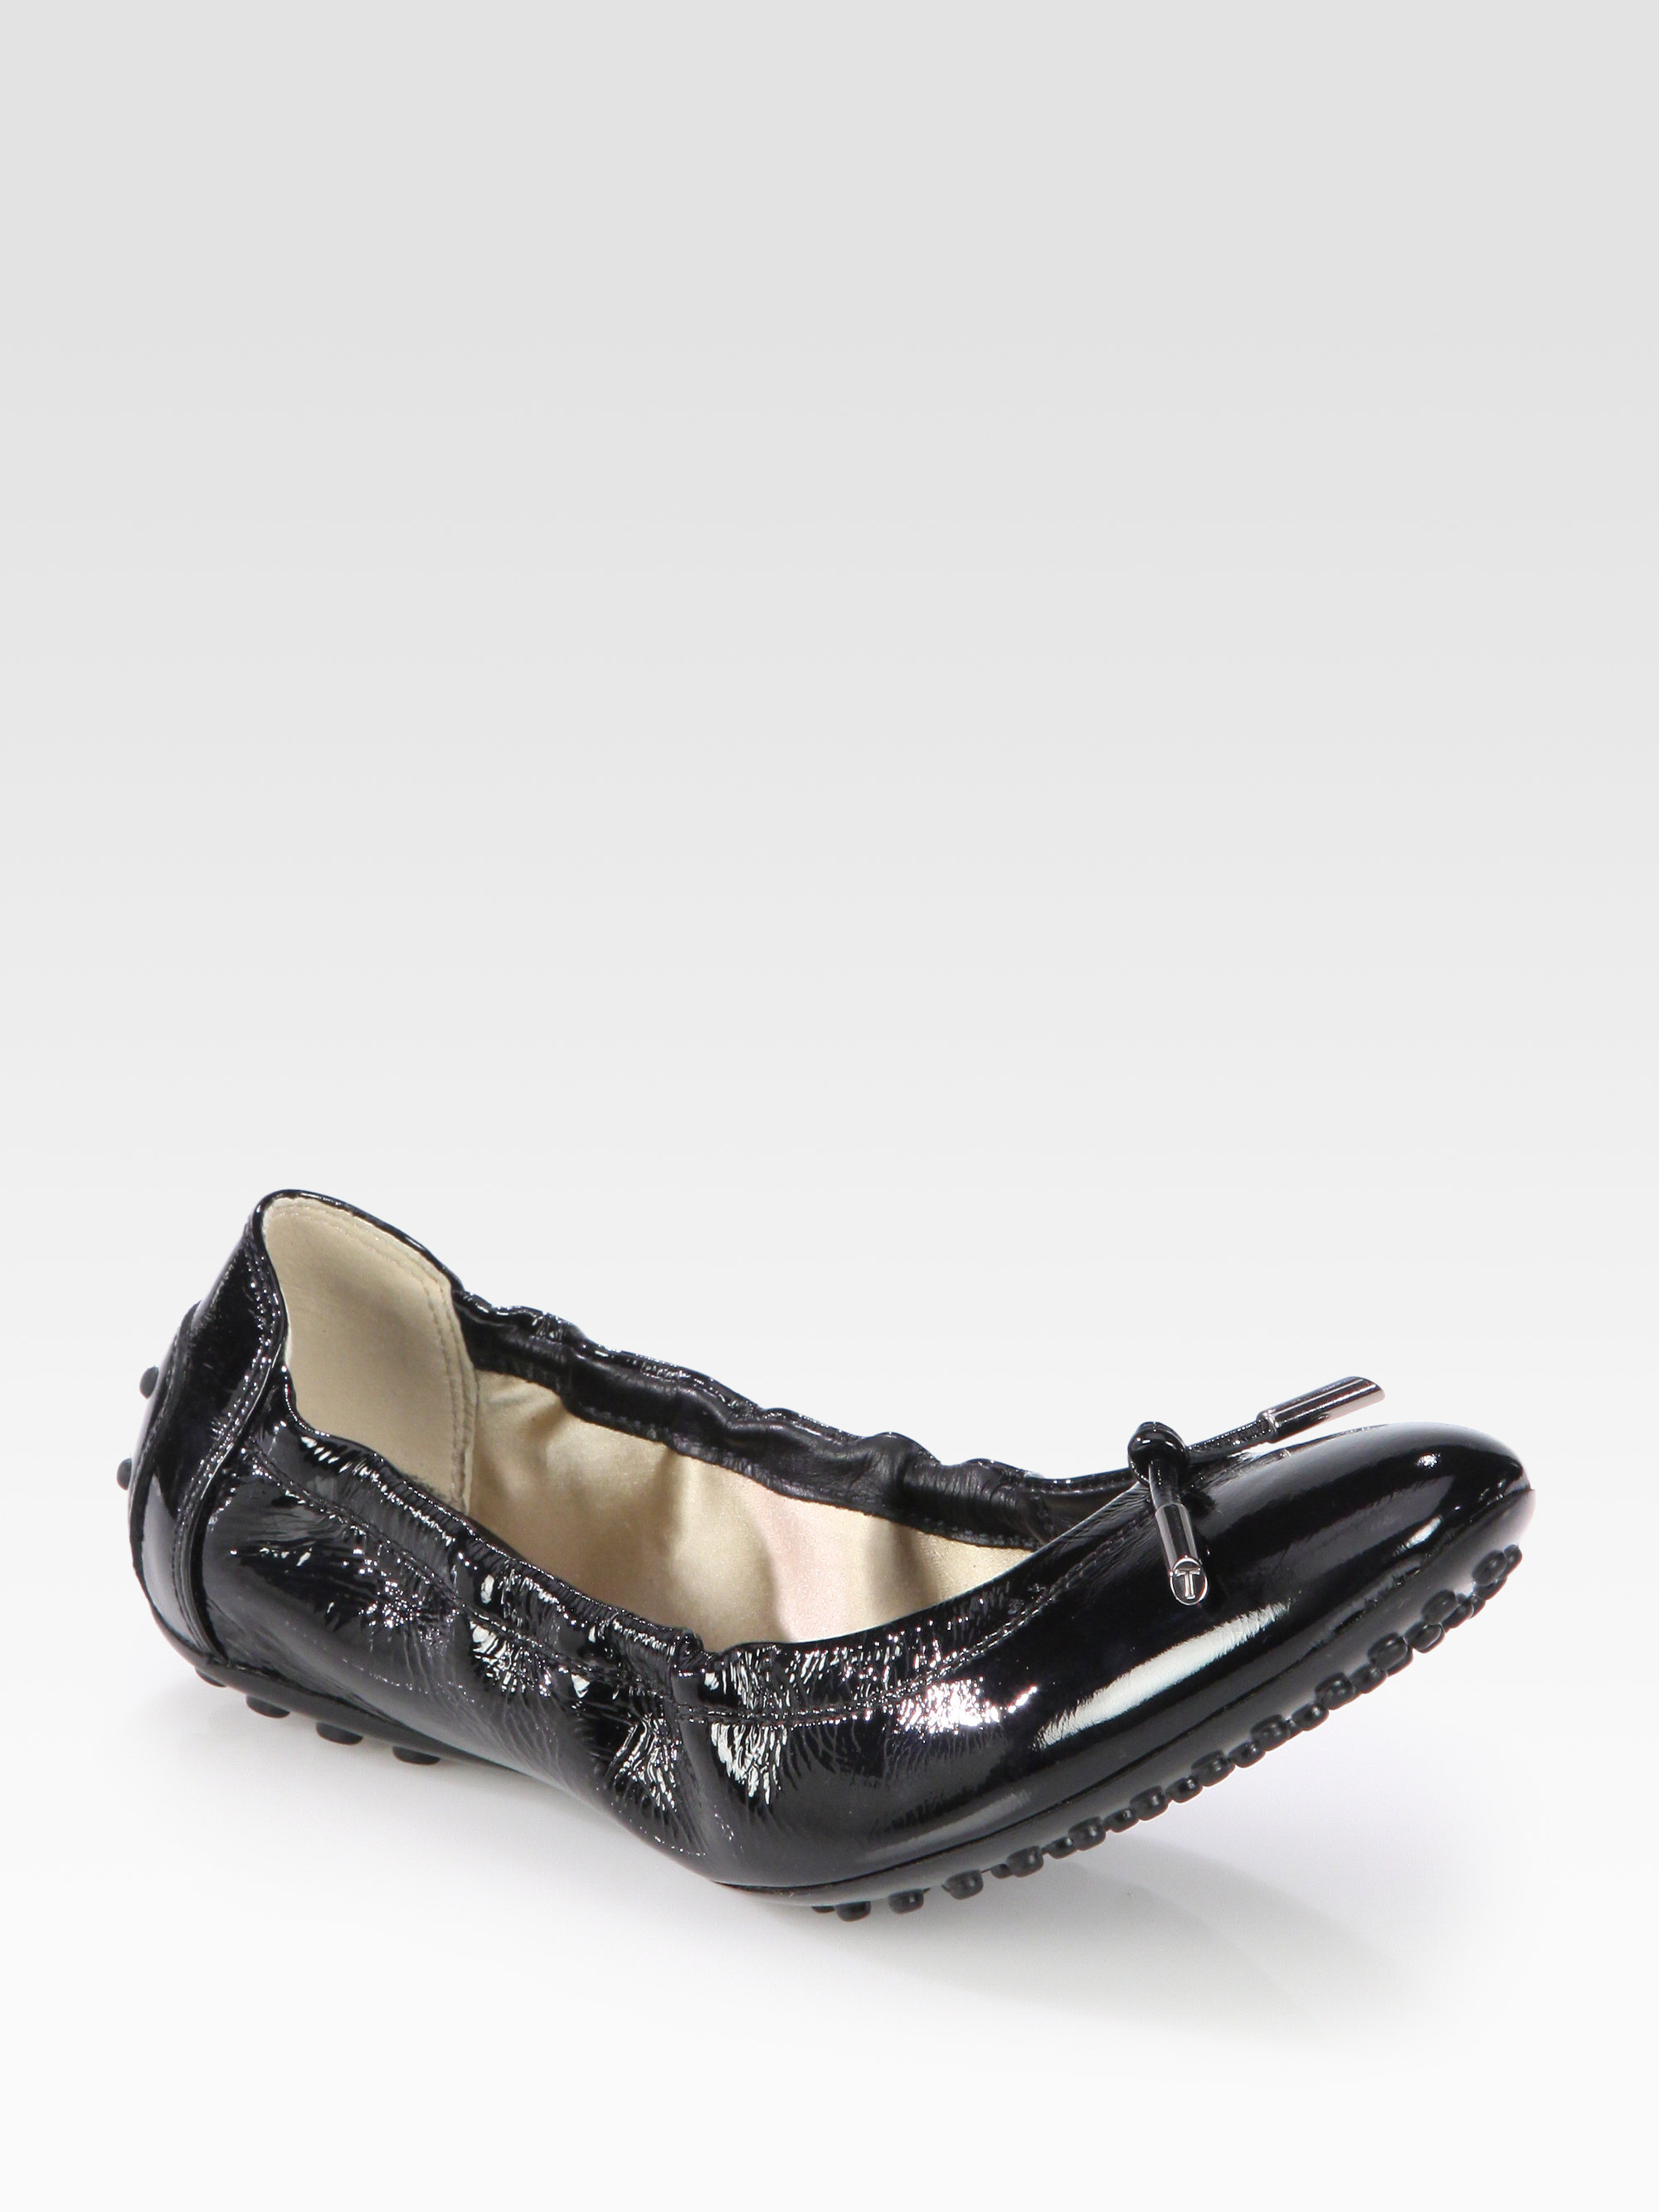 e3e66c90f3 Tod's Patent Leather Ballet Flats in Black - Lyst